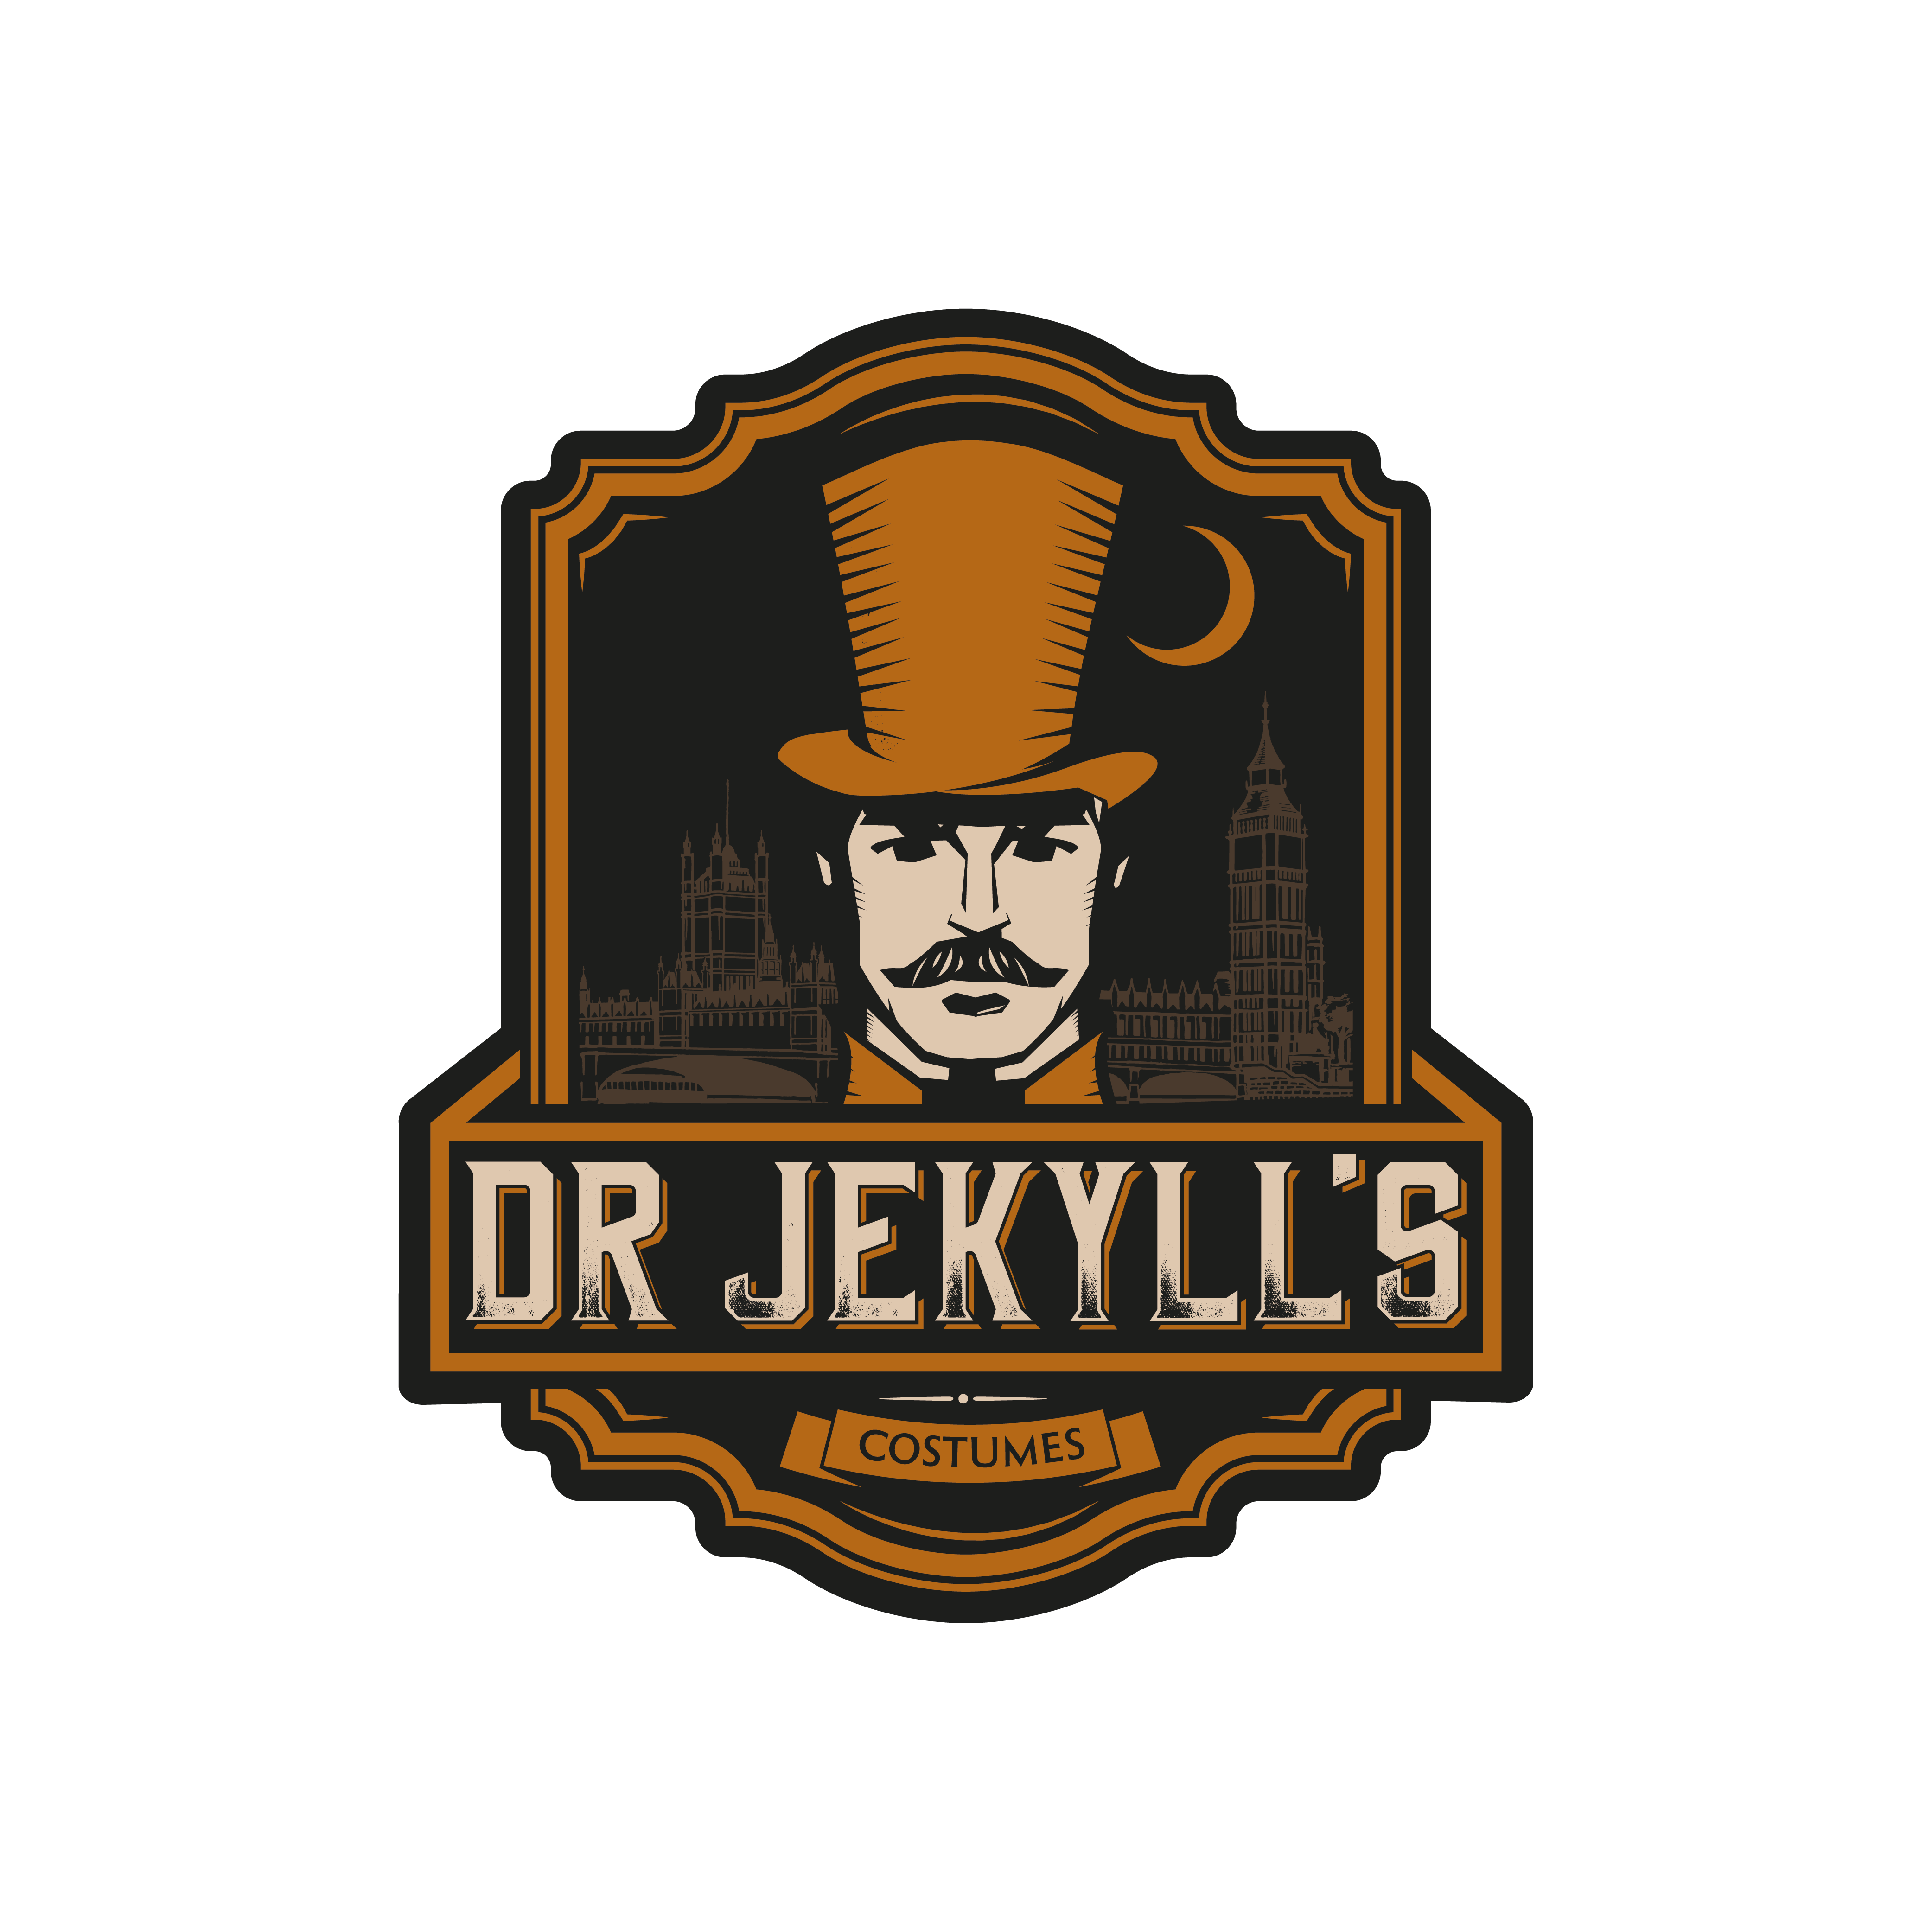 Dr Jekyll's - An independant costume and vintage retail store